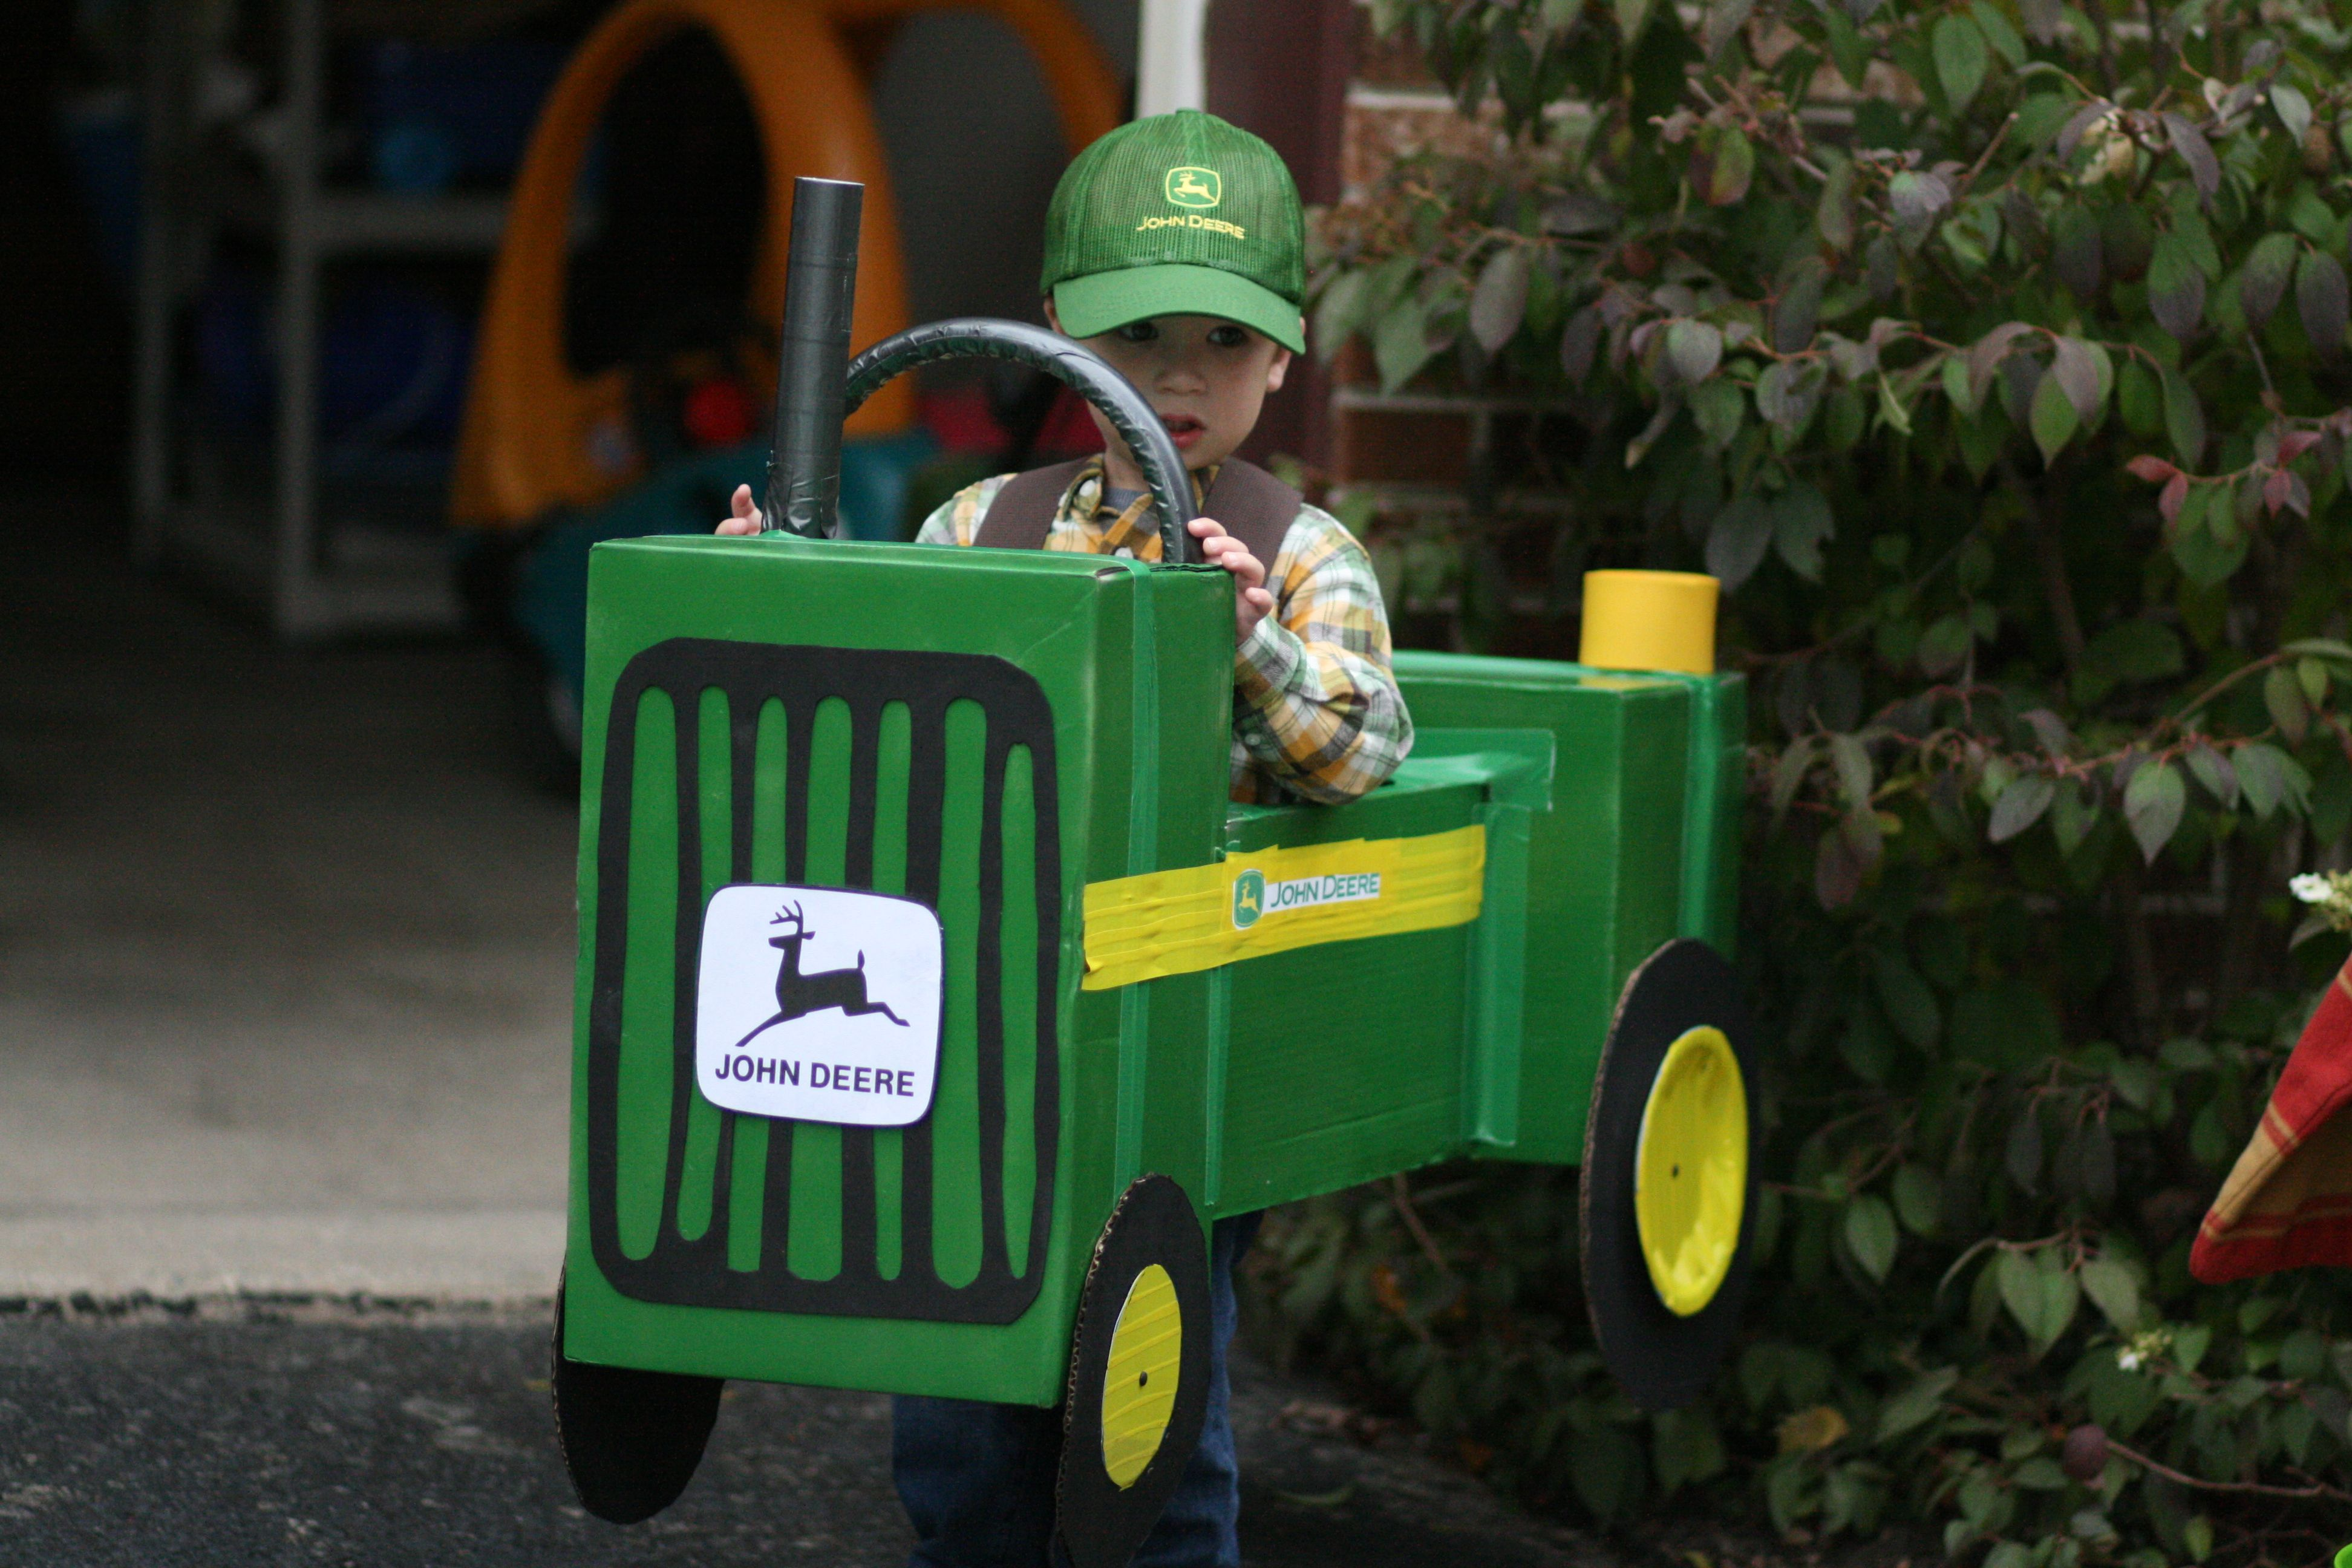 john deere tractor halloween costume i made for my nephew. | kid at